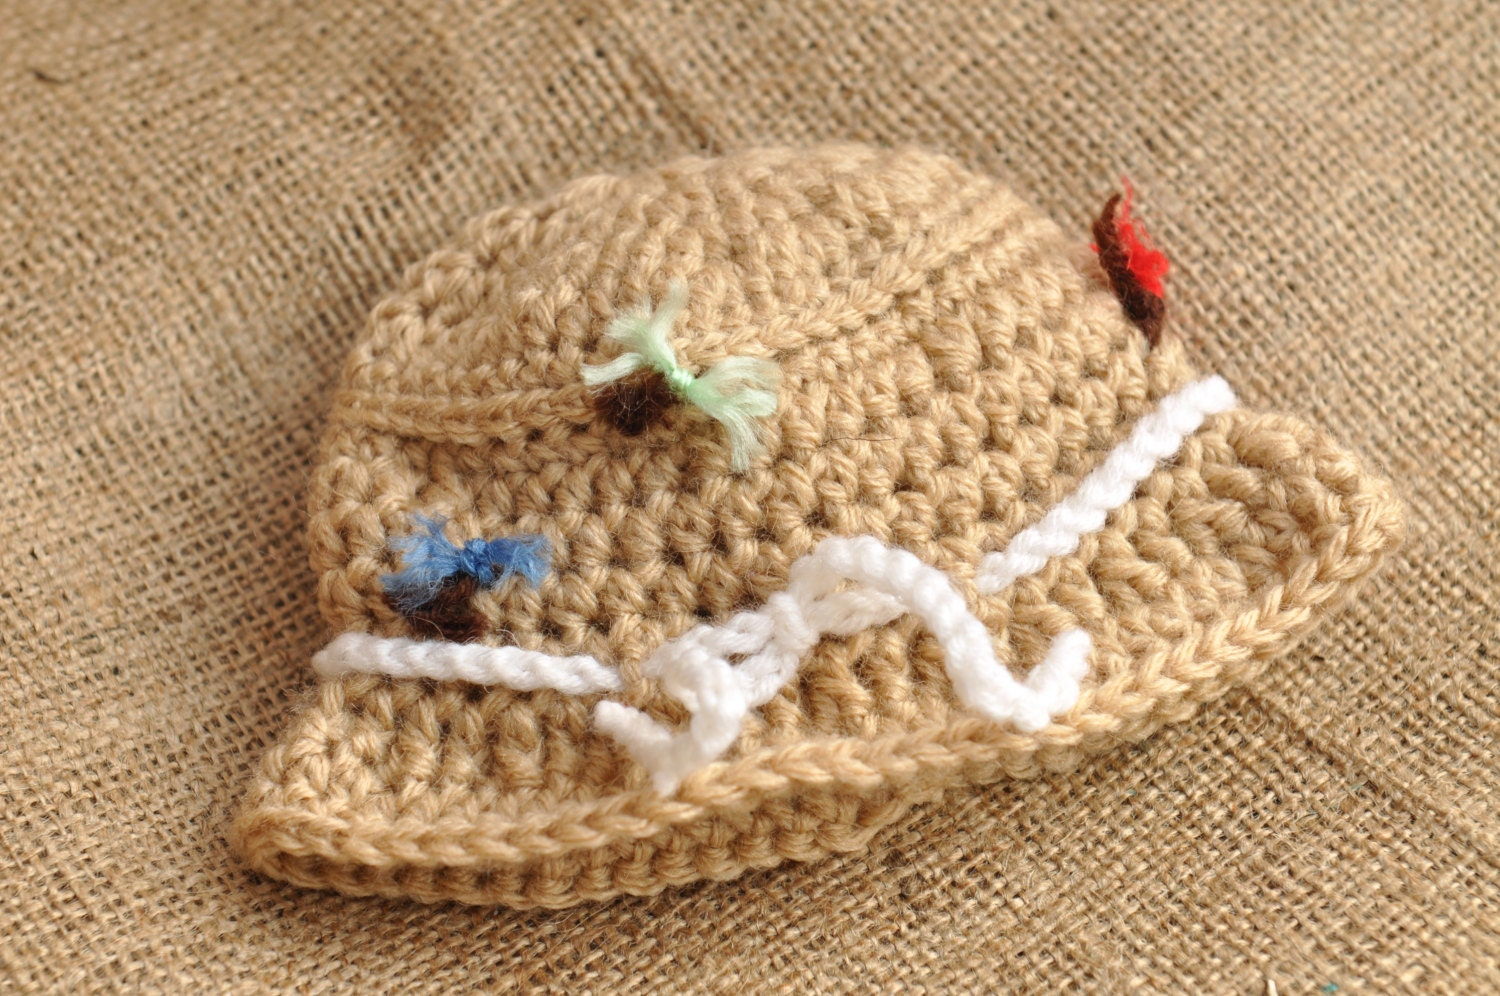 Crochet Gone Fishin' Baby Sun Hat with Goldfish {free crochet pattern} Crochet sun hats make it fun to continue crocheting when its warm! Here is a free pattern to take on a Saturday morning fishing with daddy, complete with a goldfish applique.